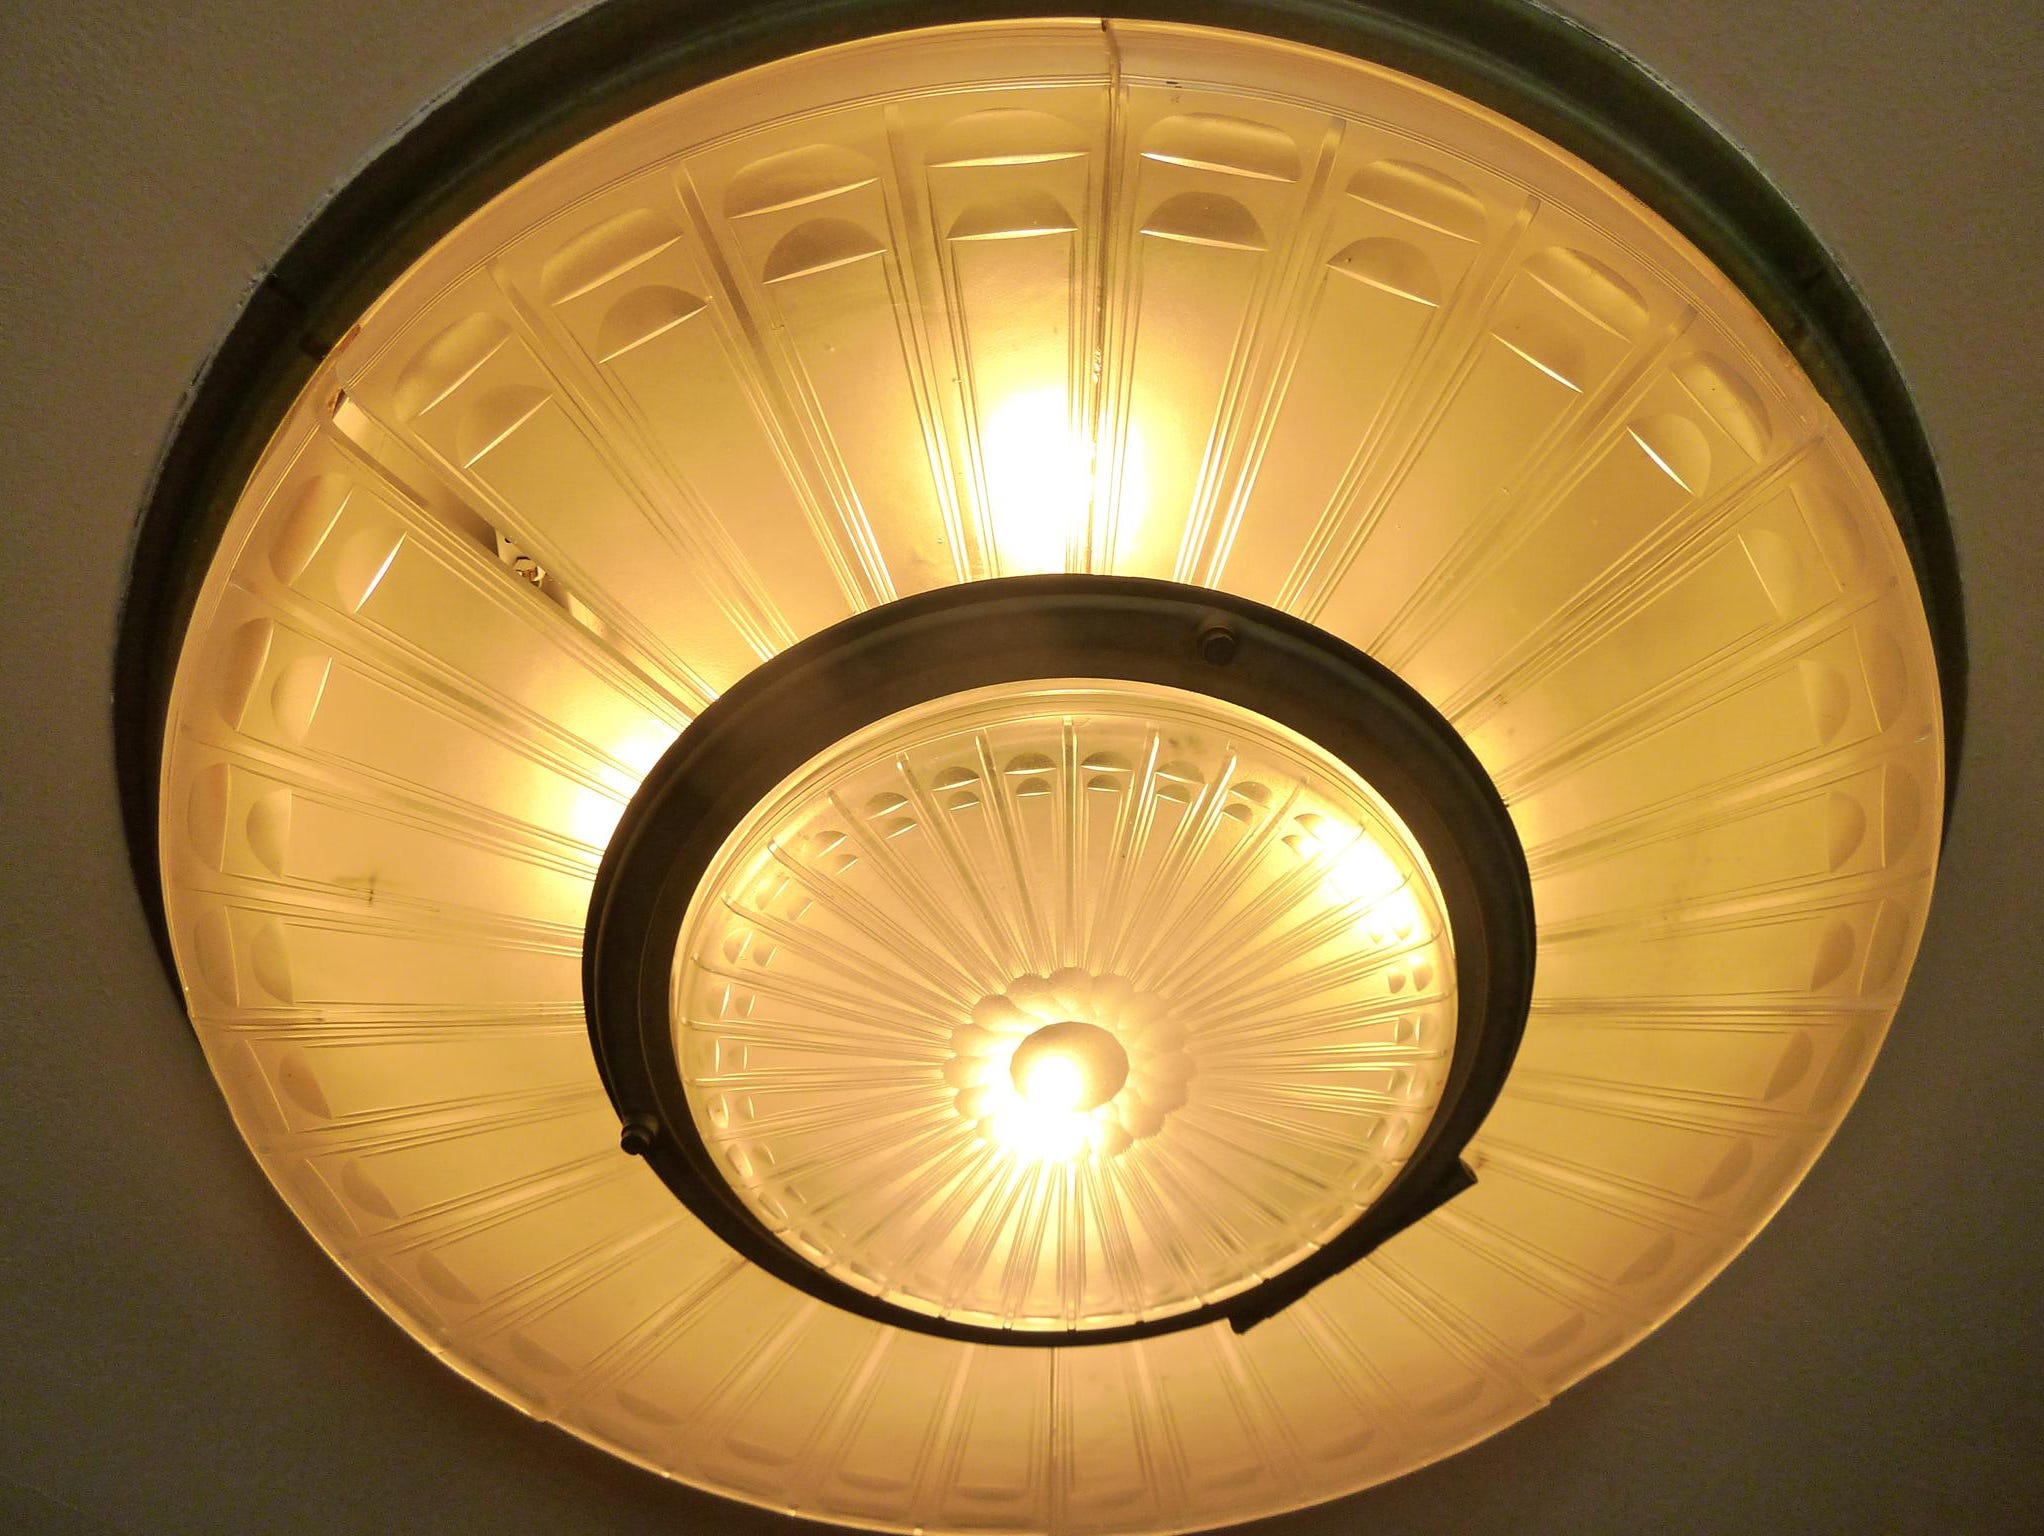 Here is a close-up view of one of those opulent etched-glass light fixtures in the R Deck vestibule.